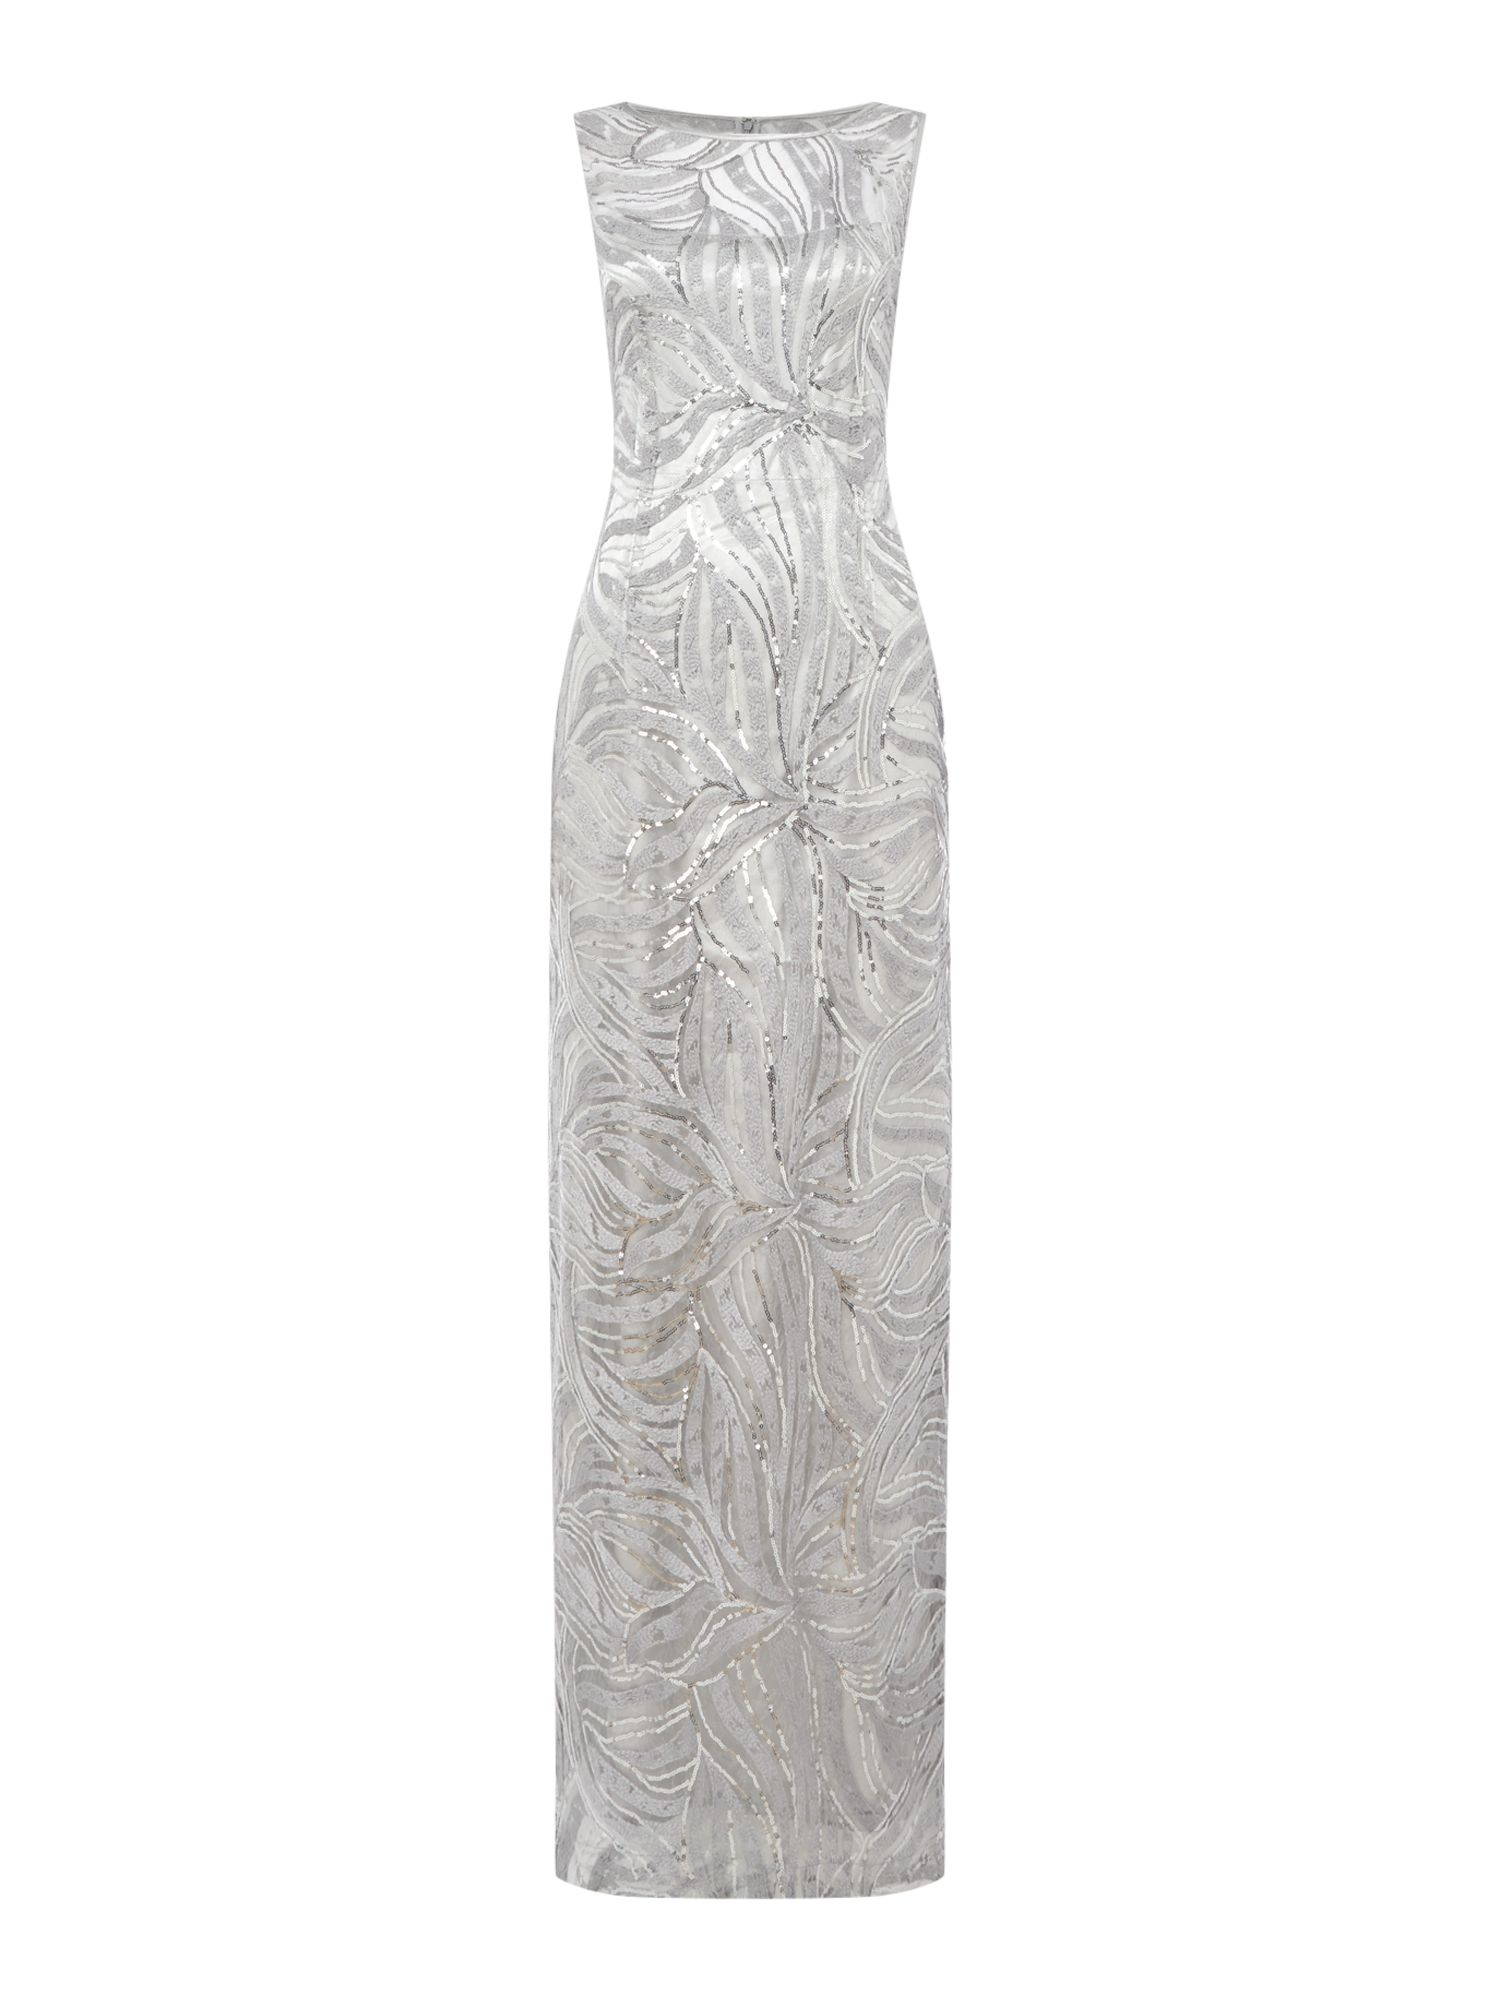 Tahari ASL Sequined Silver Gown, Silver Silverlic